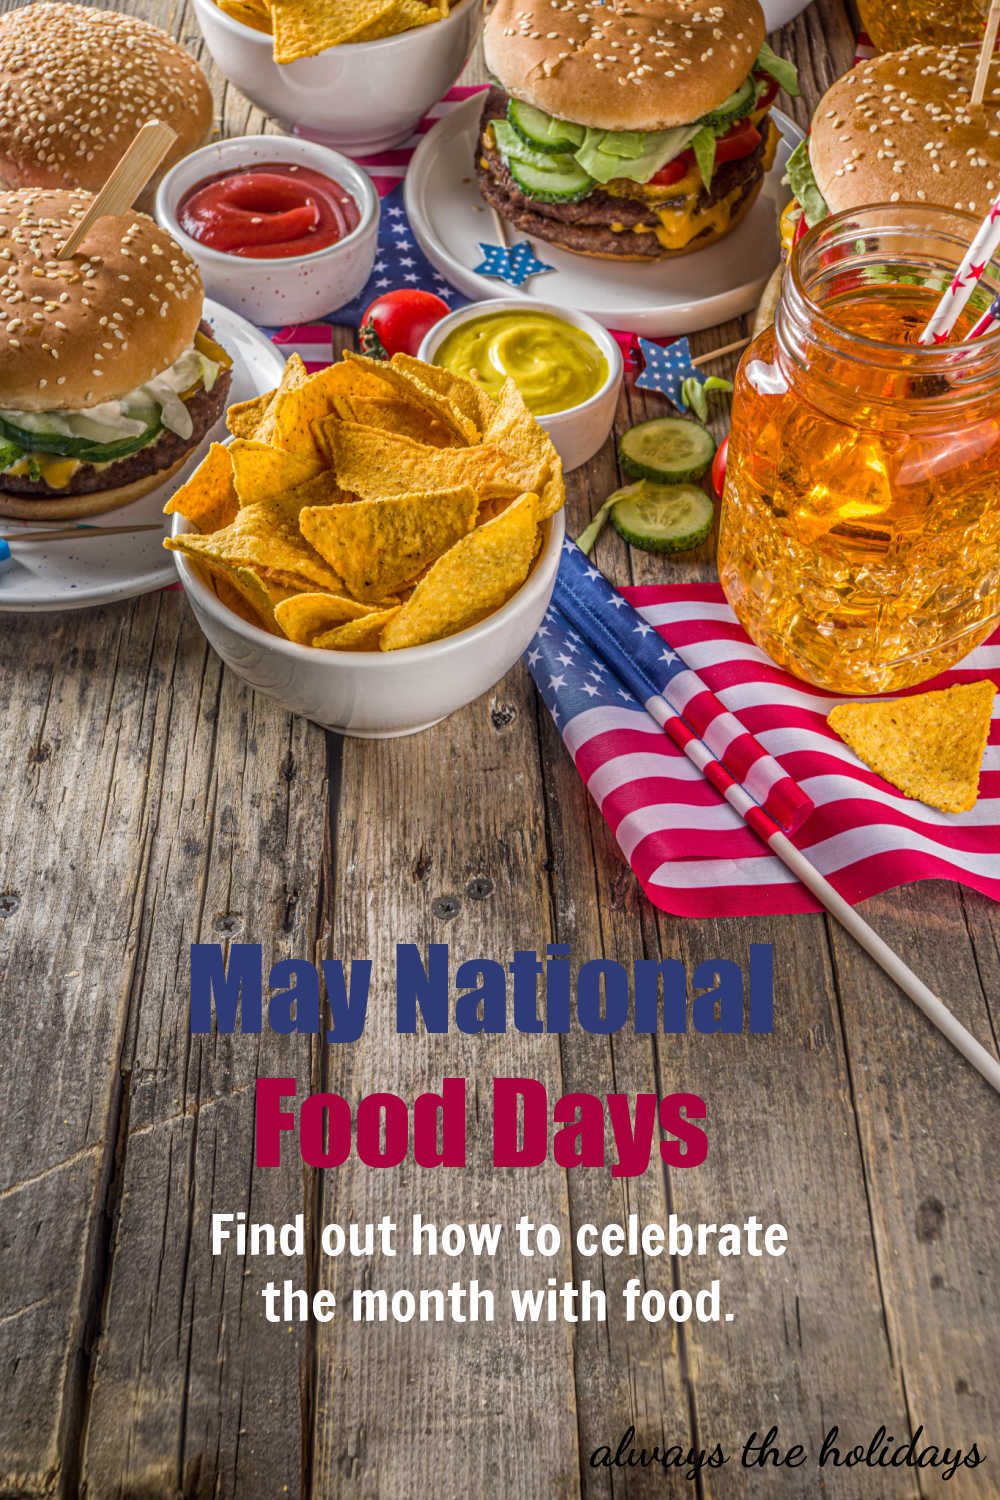 Food on a wooden board with flags and text reading May National Food Days - Find out how to celebrate the month with food.